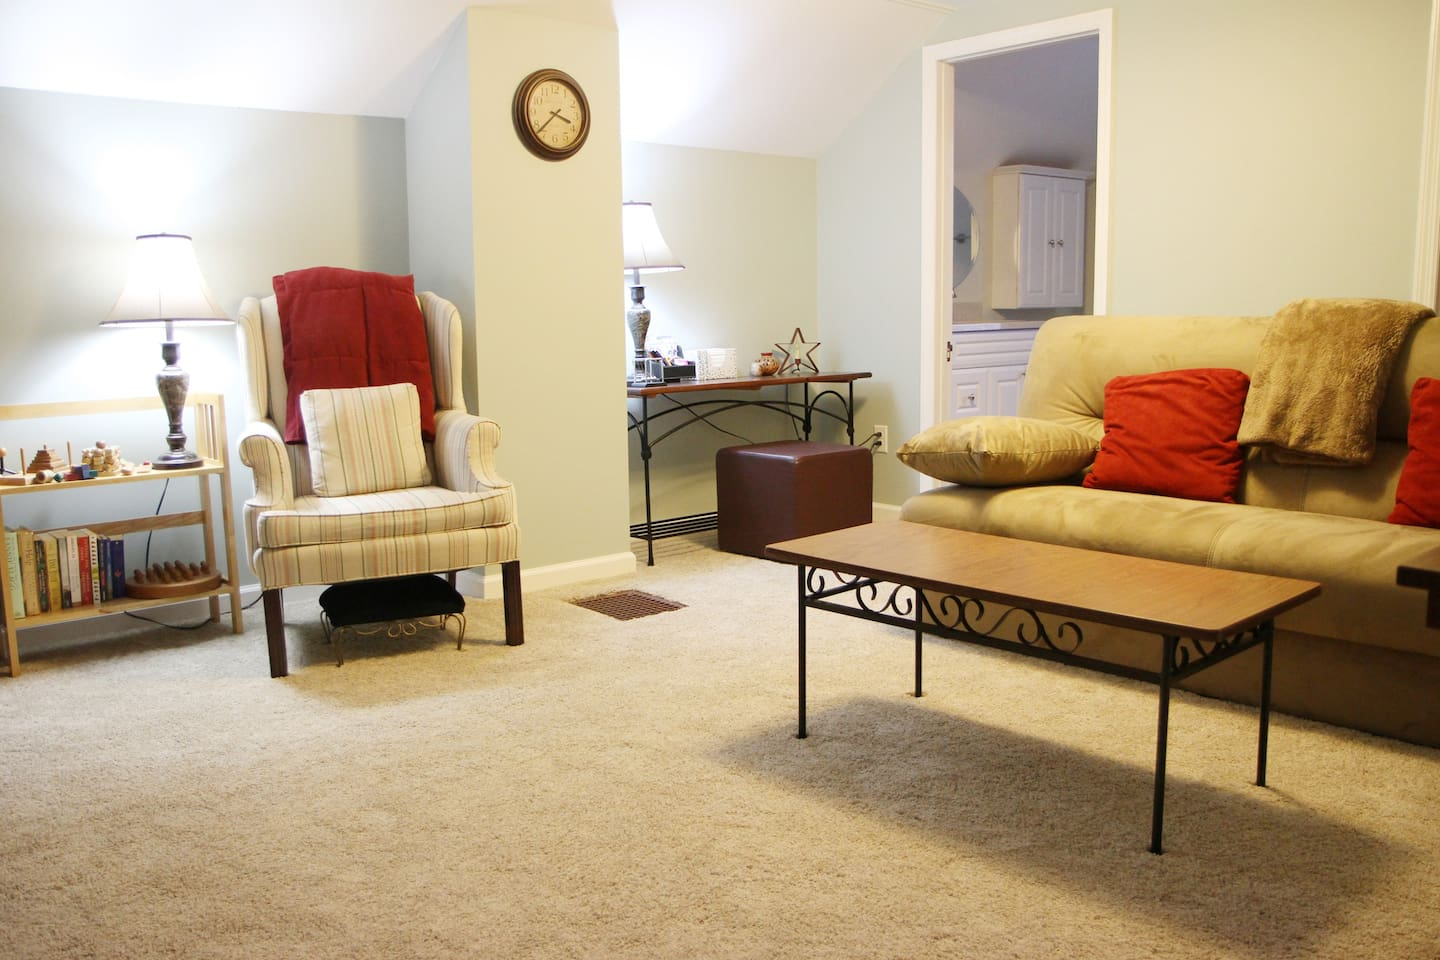 Sitting room with comfortable chair and sofa that opens to a full size bed. Cable TV included.